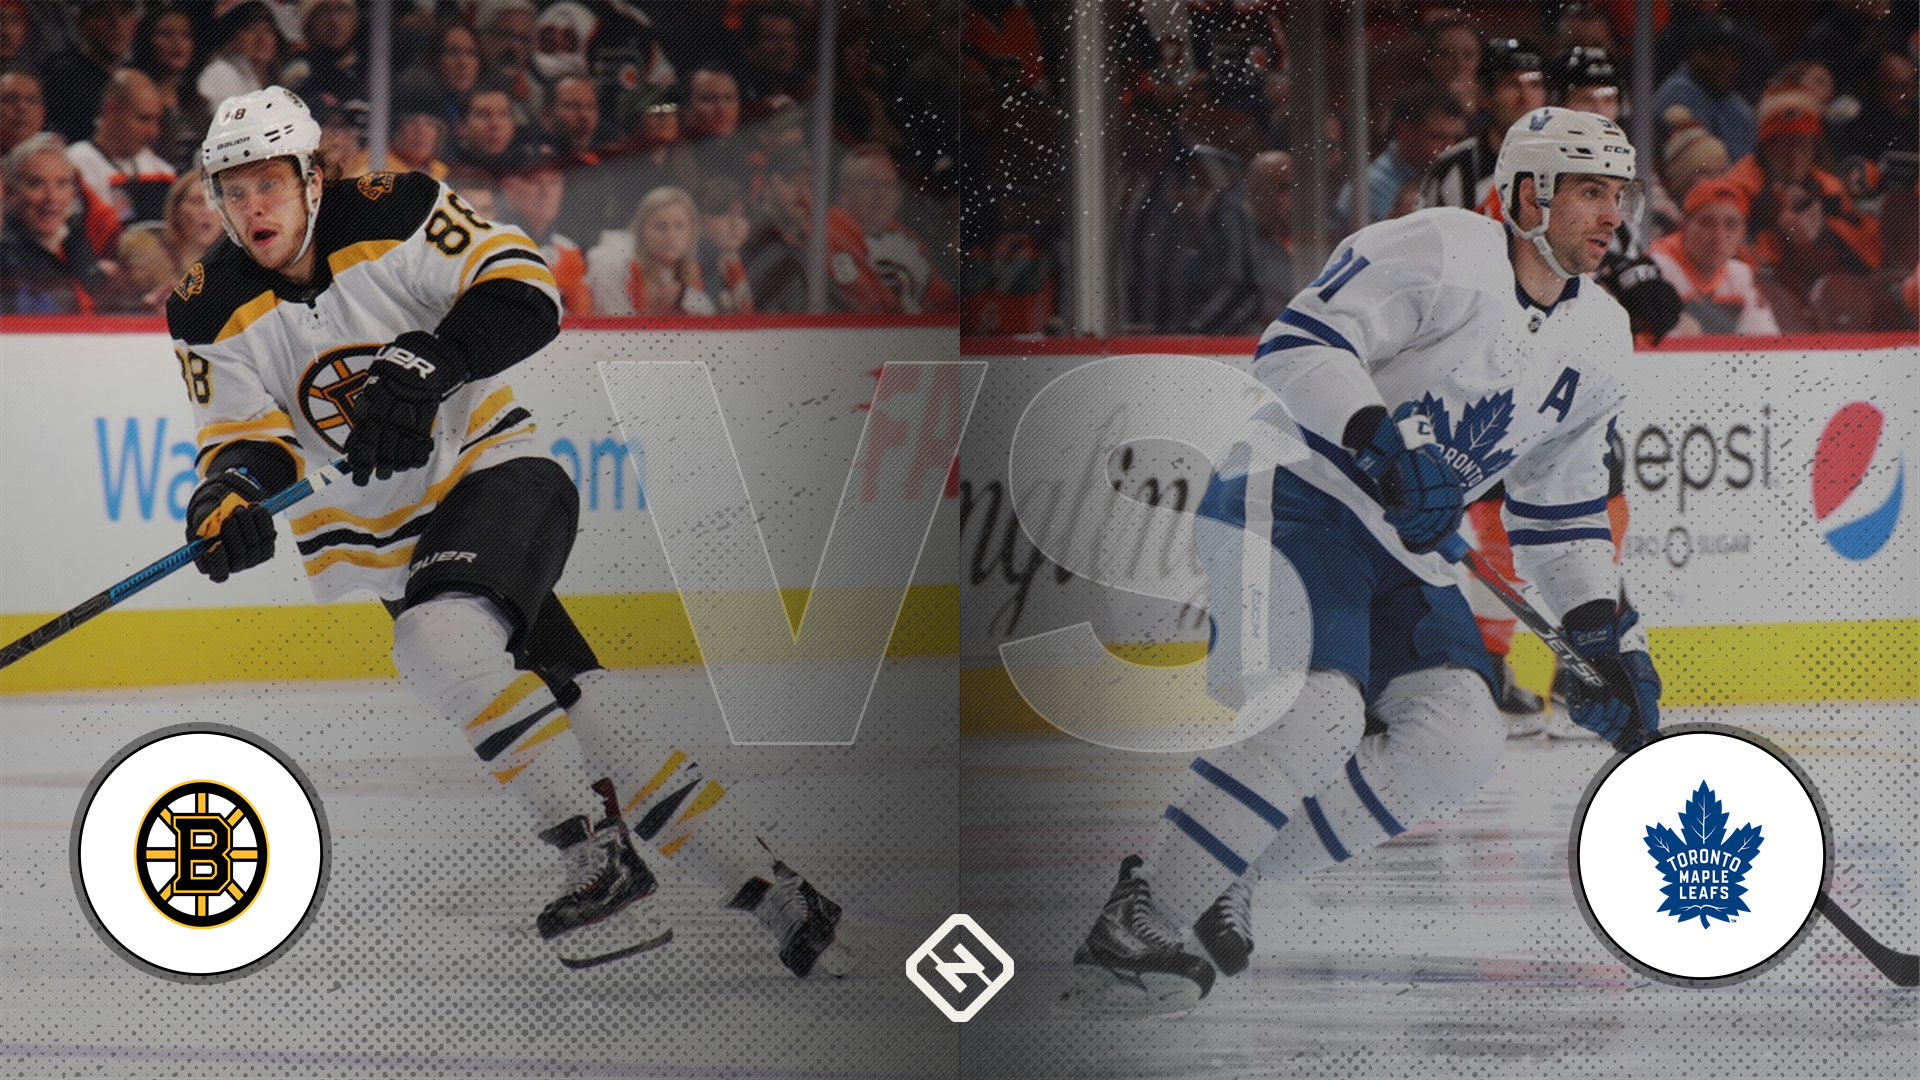 Nhl Playoffs 2019 Predictions Odds For Bruins Vs Maple Leafs First Round Series Sporting News Canada